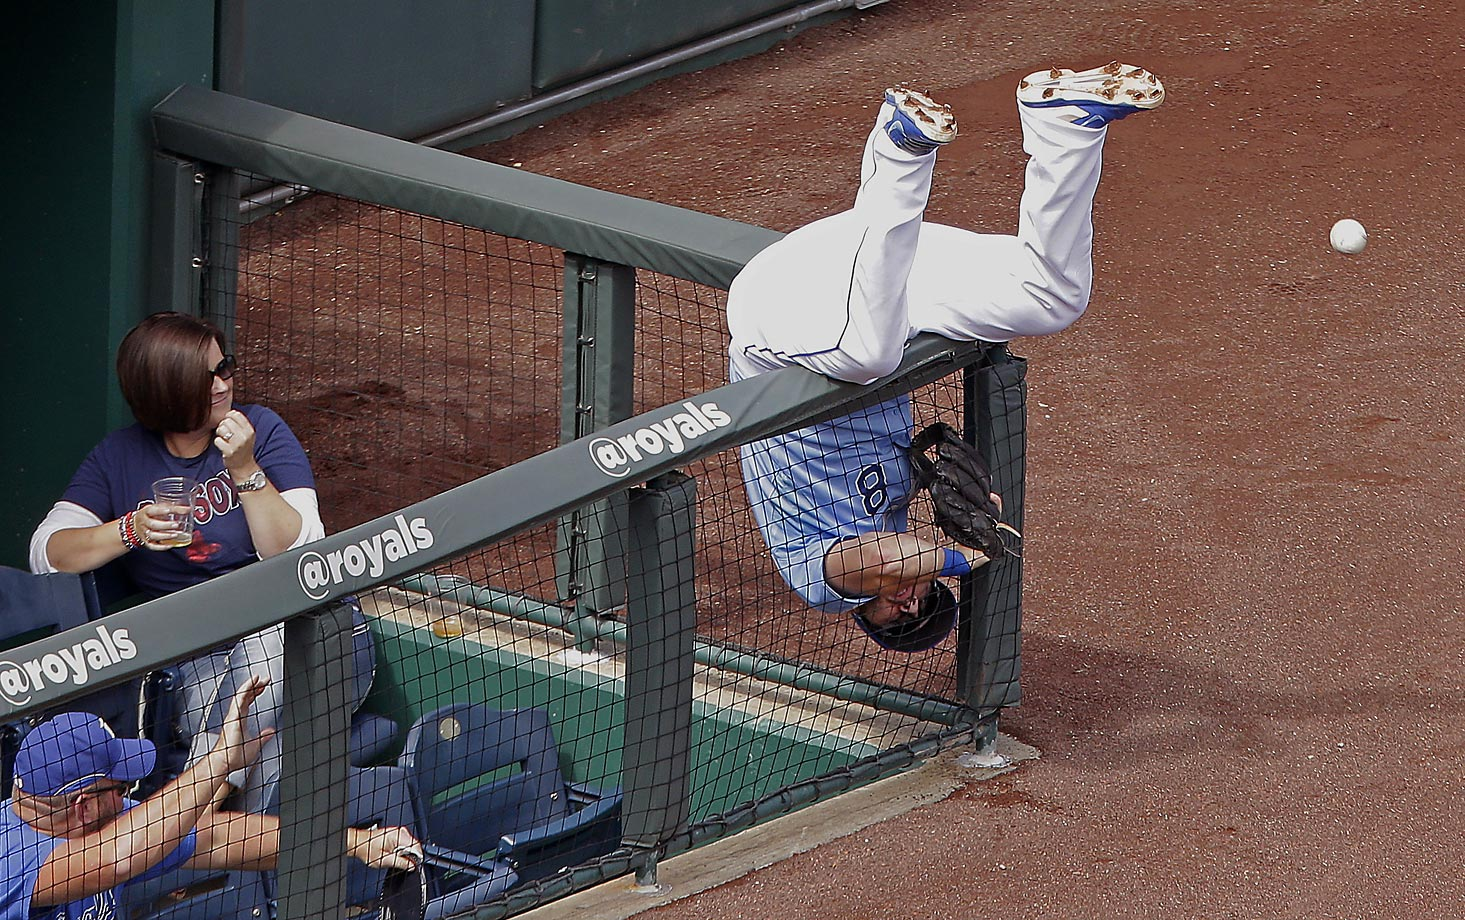 Kansas City Royals third baseman Mike Moustakas gets hung up in the fencing while trying to catch a foul ball in a game against the Red Sox.